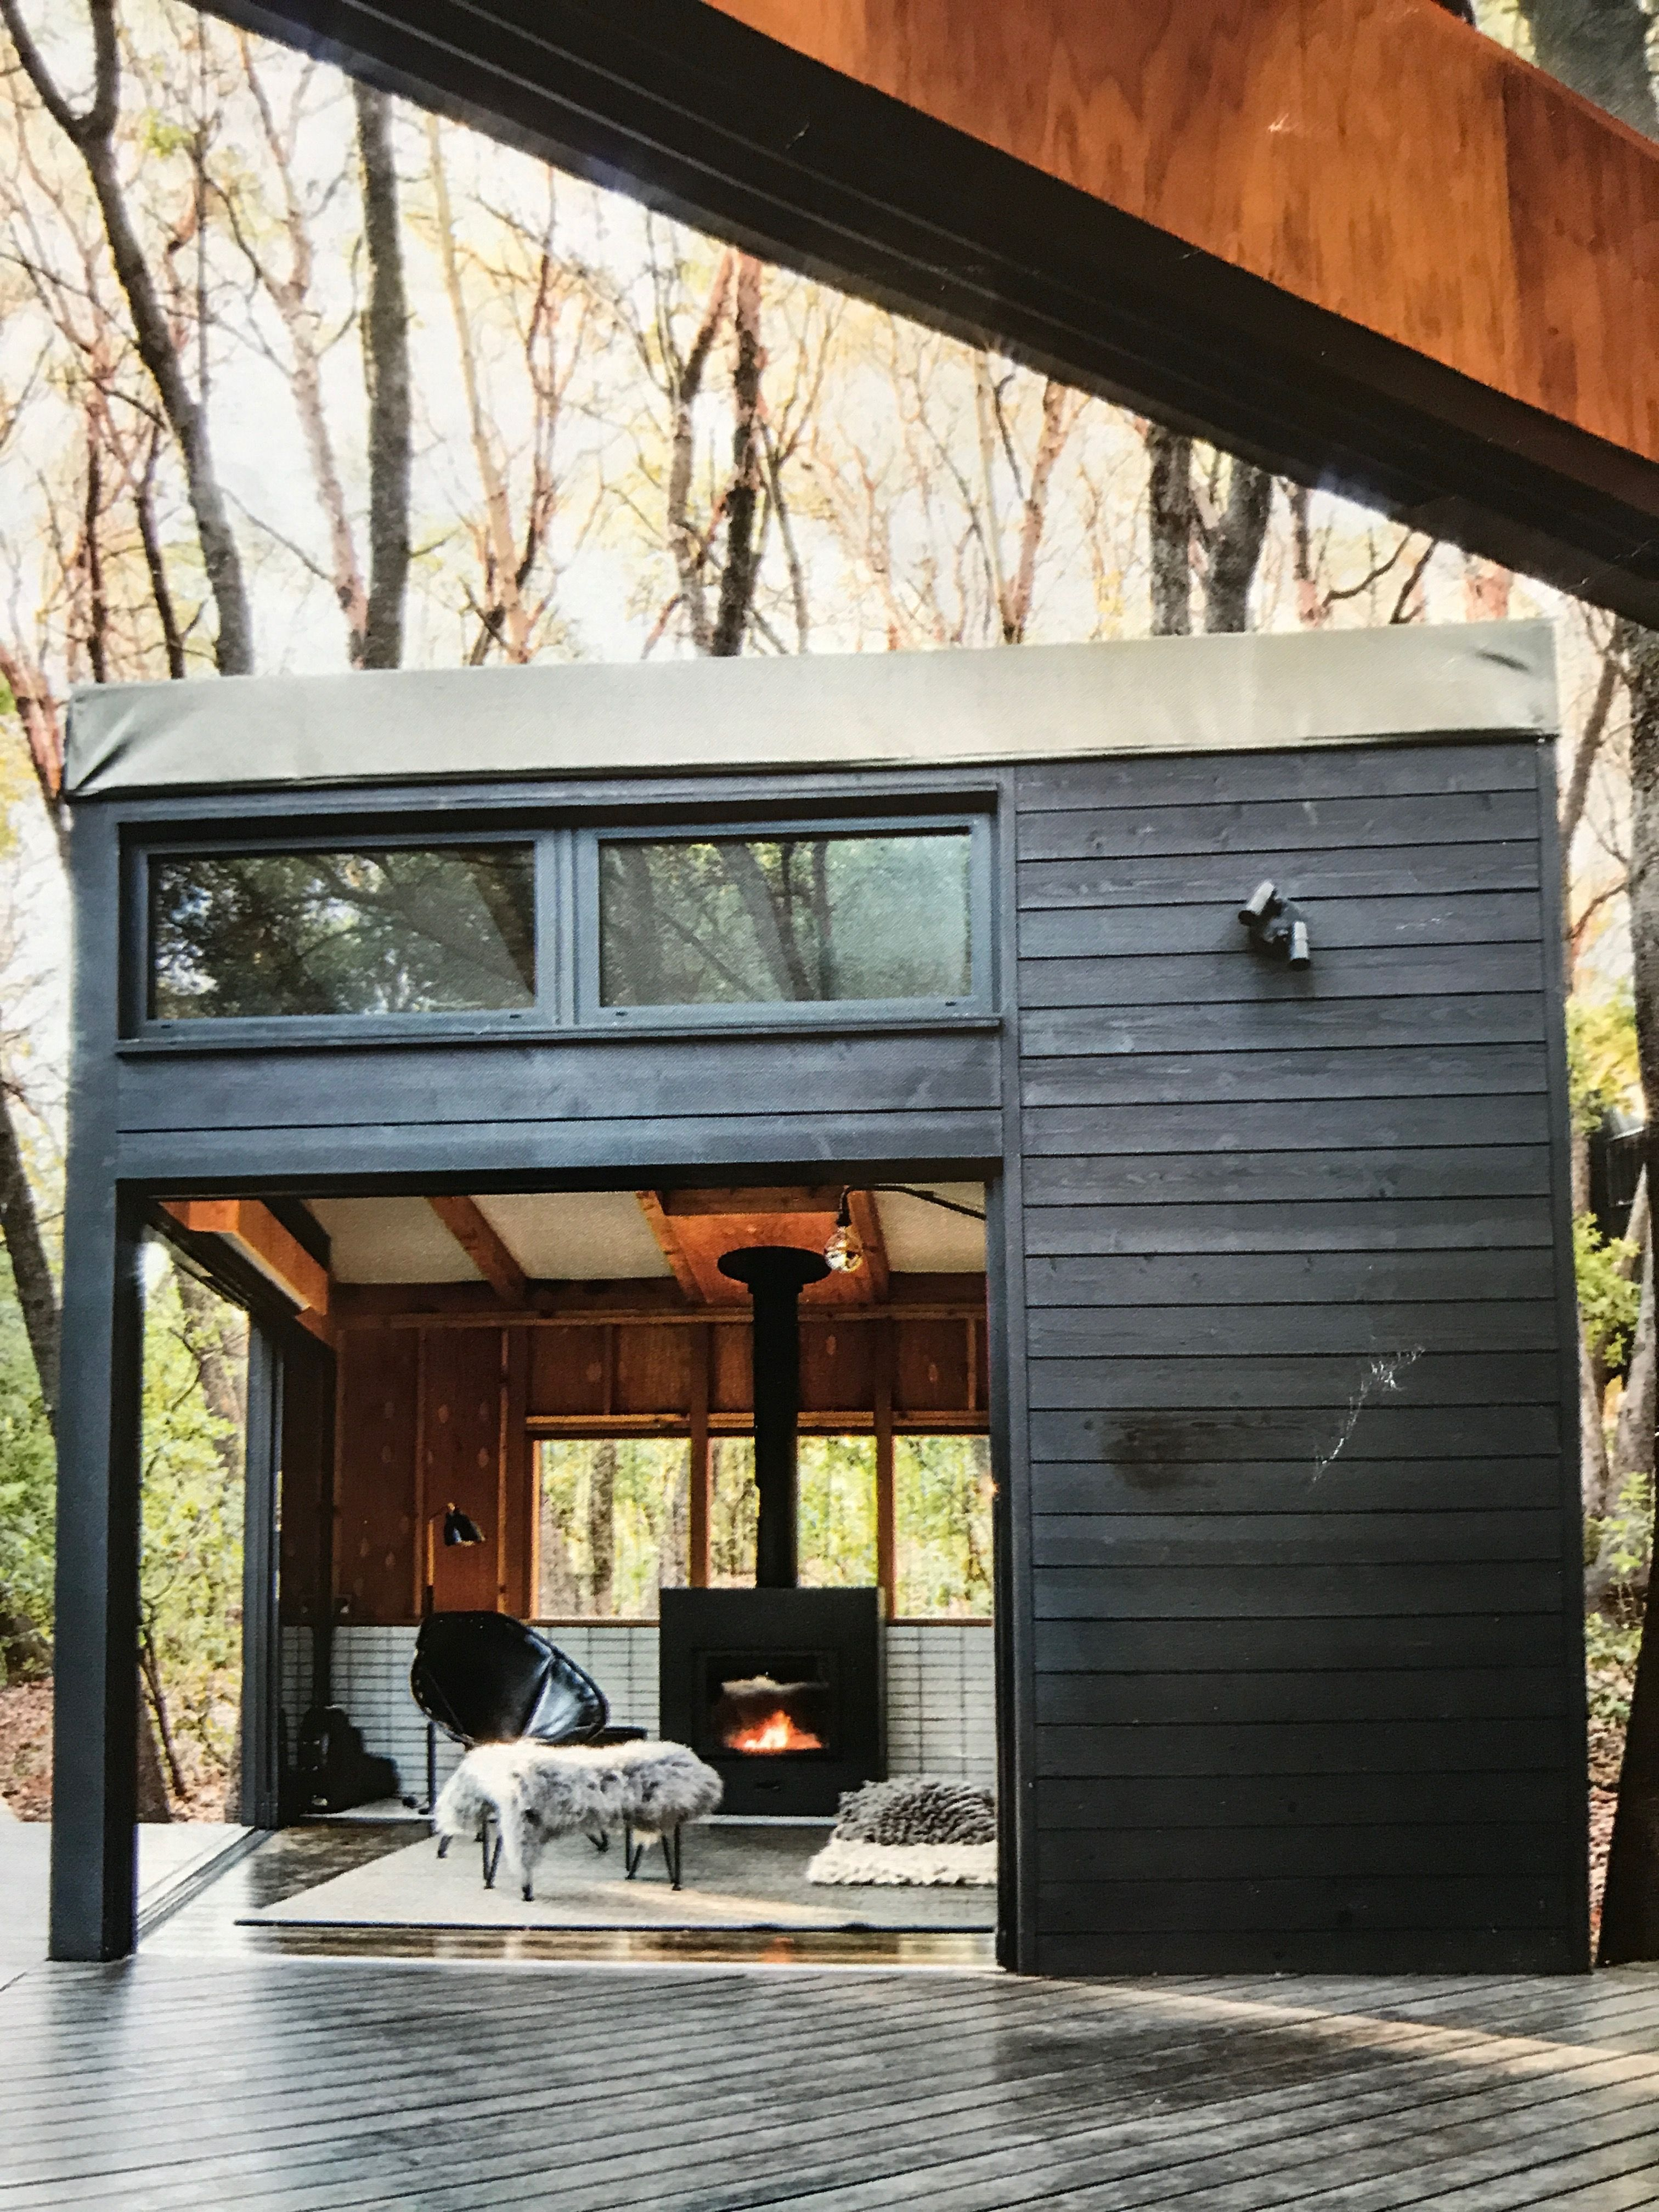 Pin By D On Greenhouse Minimalist House Design Tiny House Cabin Tiny House Design